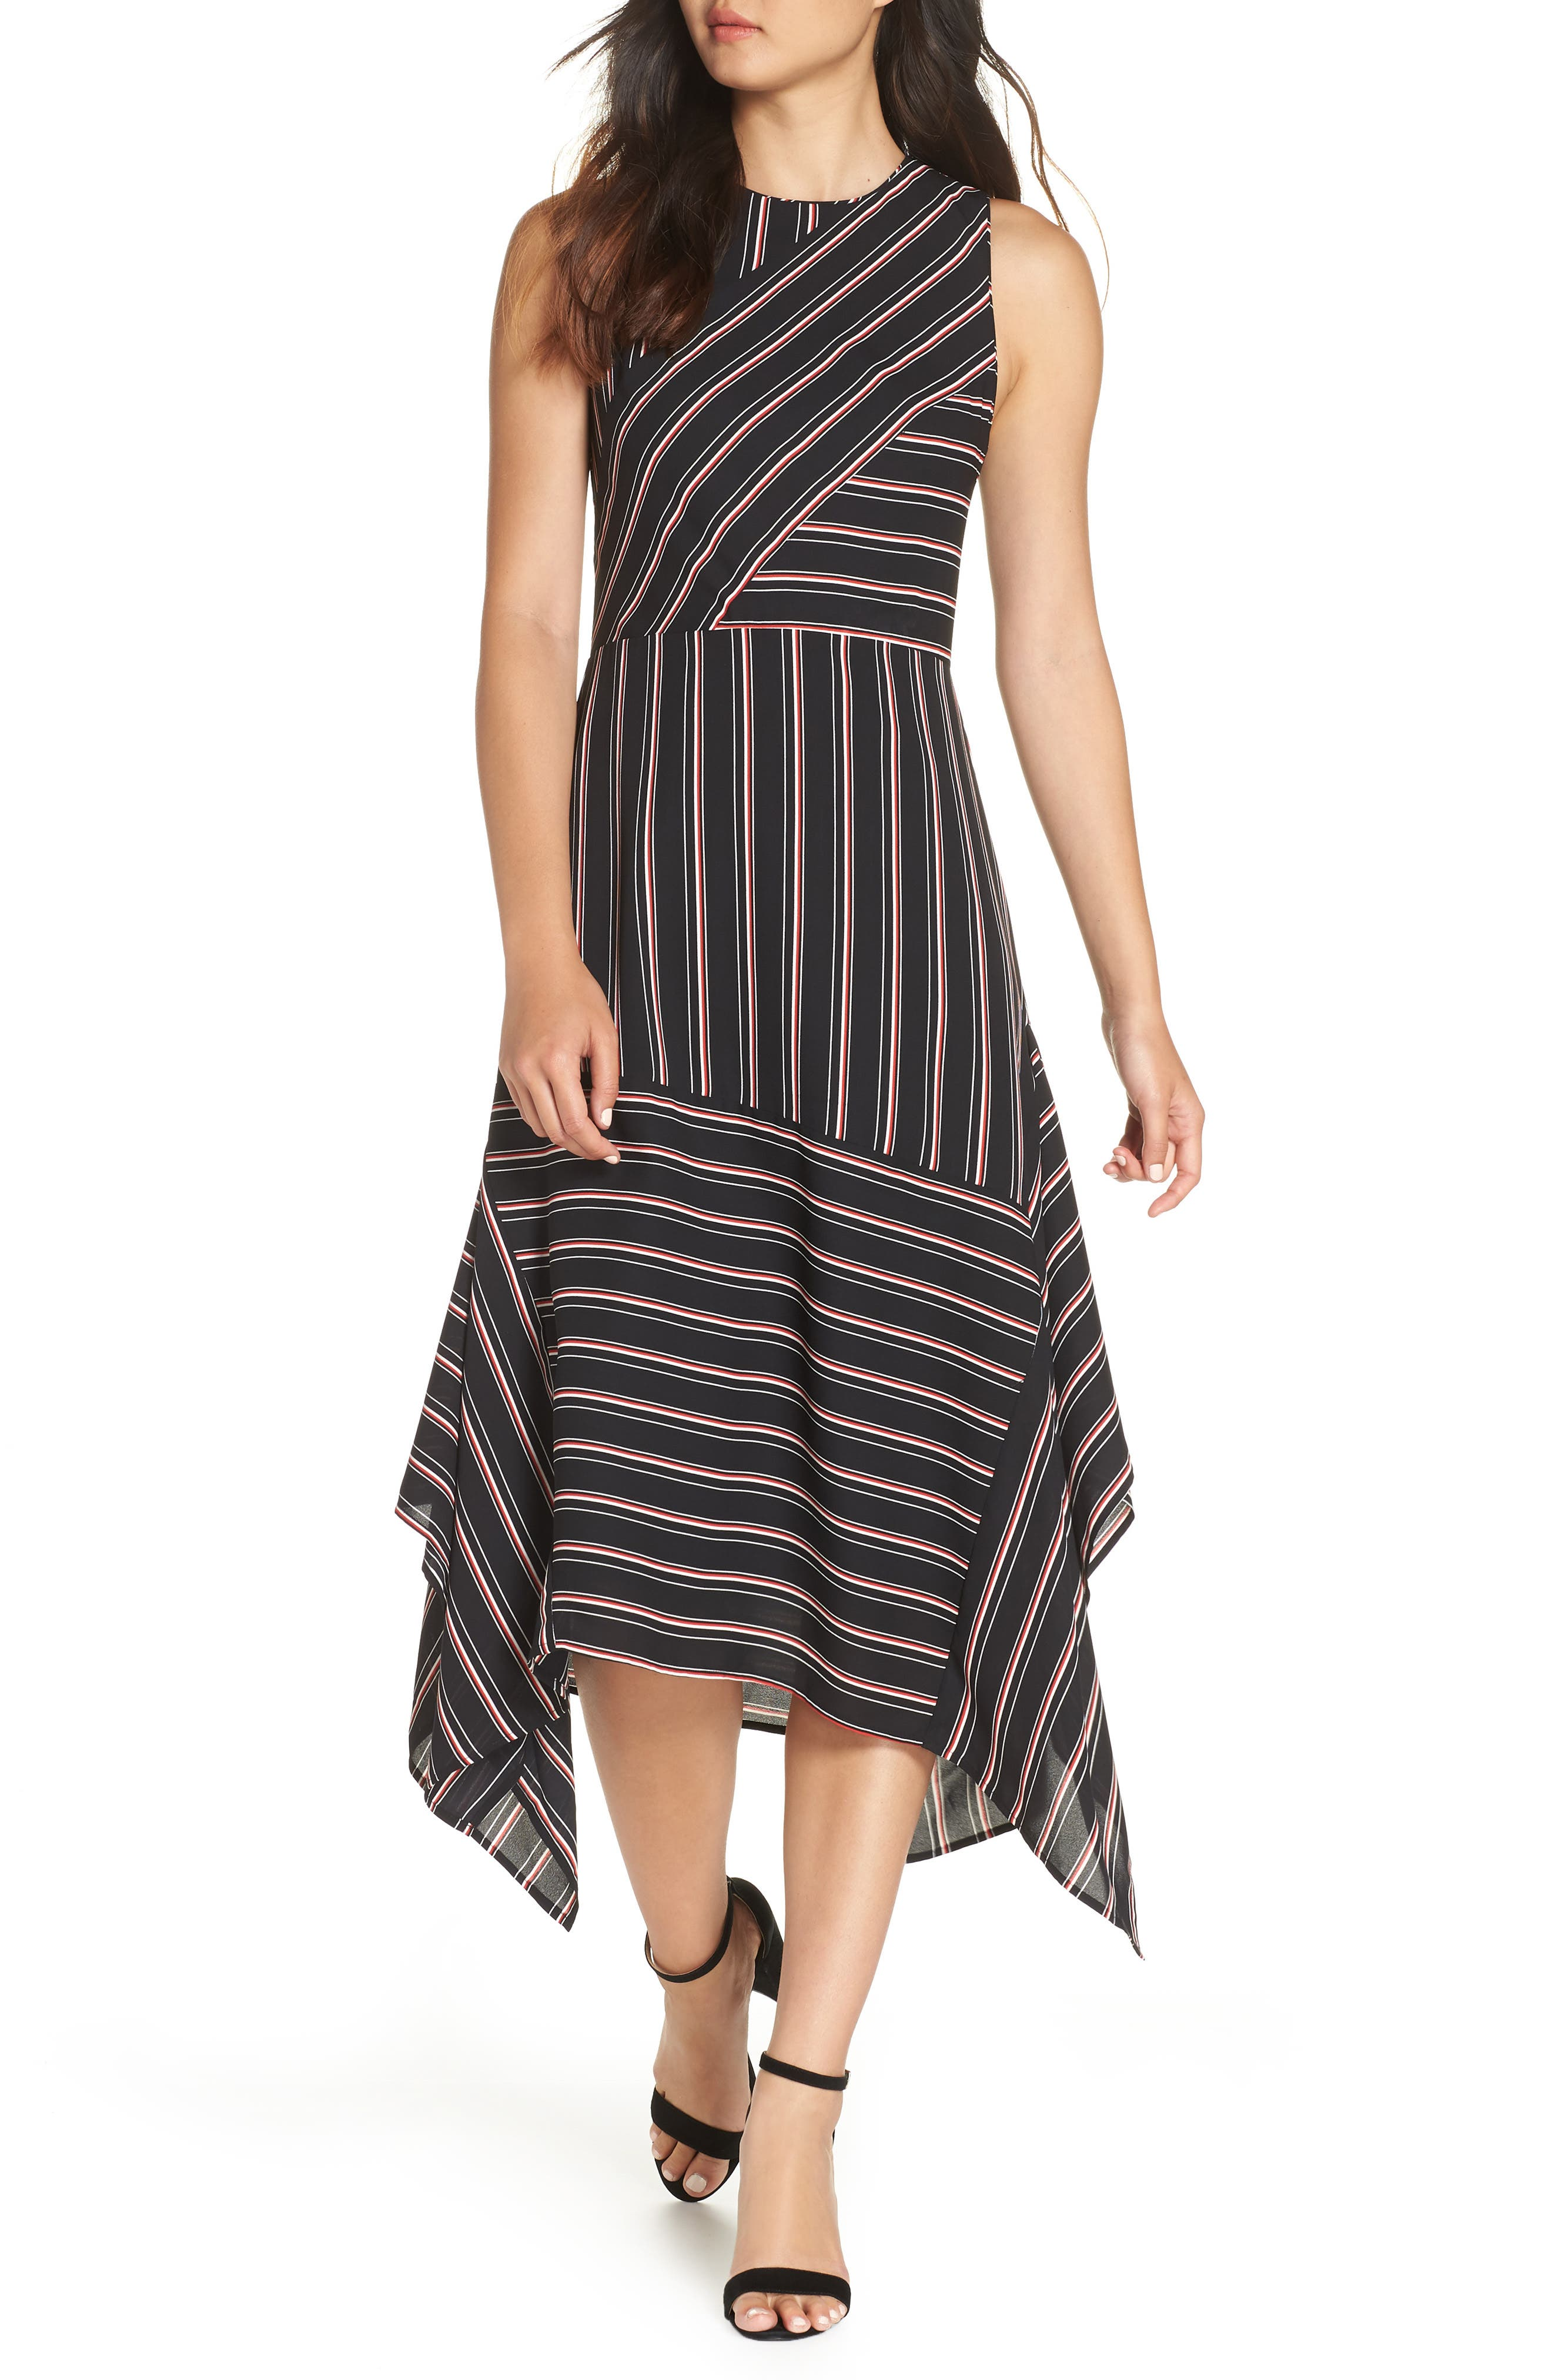 Mix Stripe Midi Dress,                         Main,                         color, BLACK STRIPE MIX COMBO